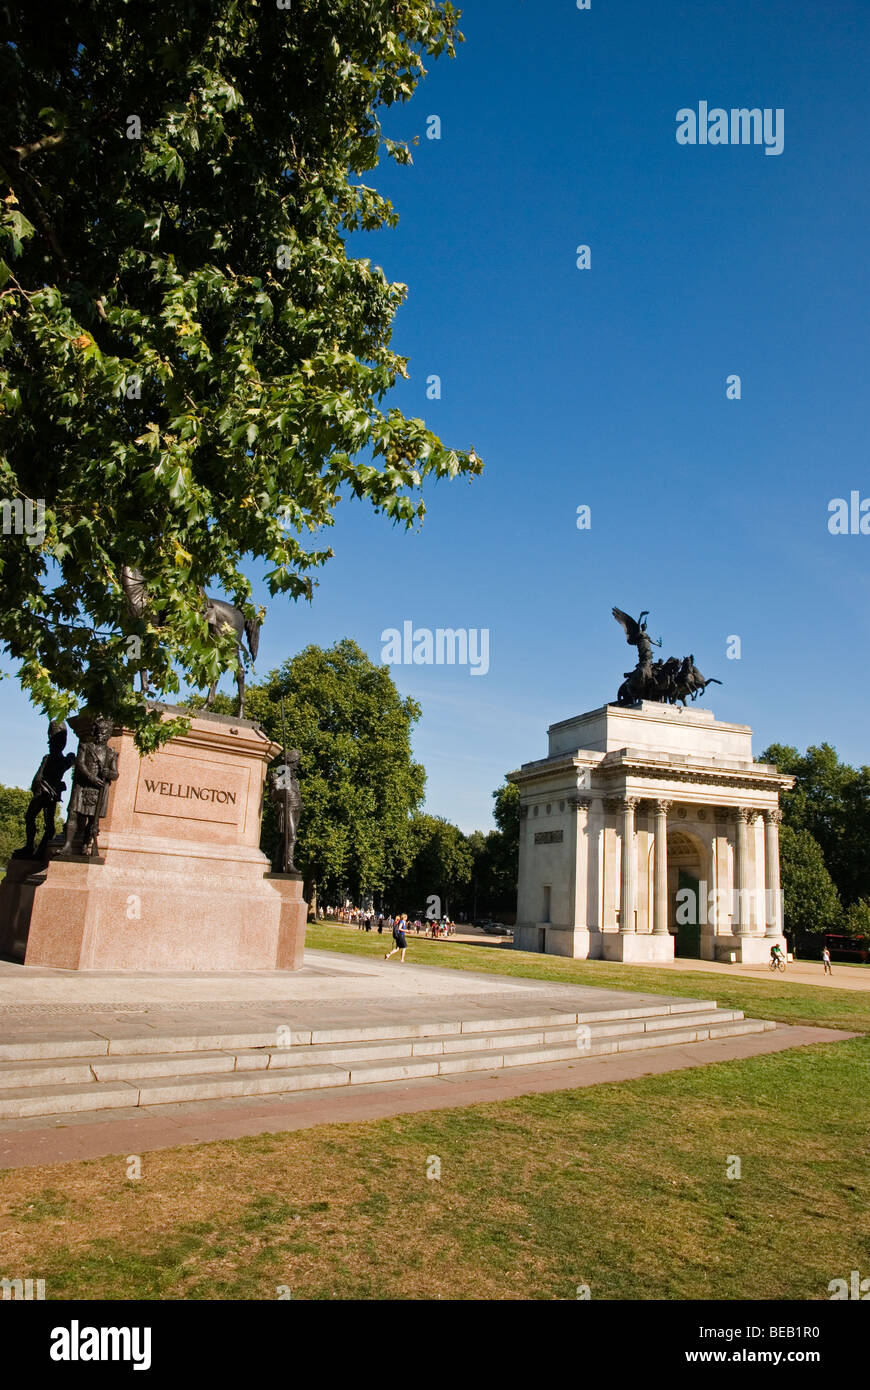 Statue of Duke of Wellington and Wellington Arch, Hyde Park Corner London England UK - Stock Image